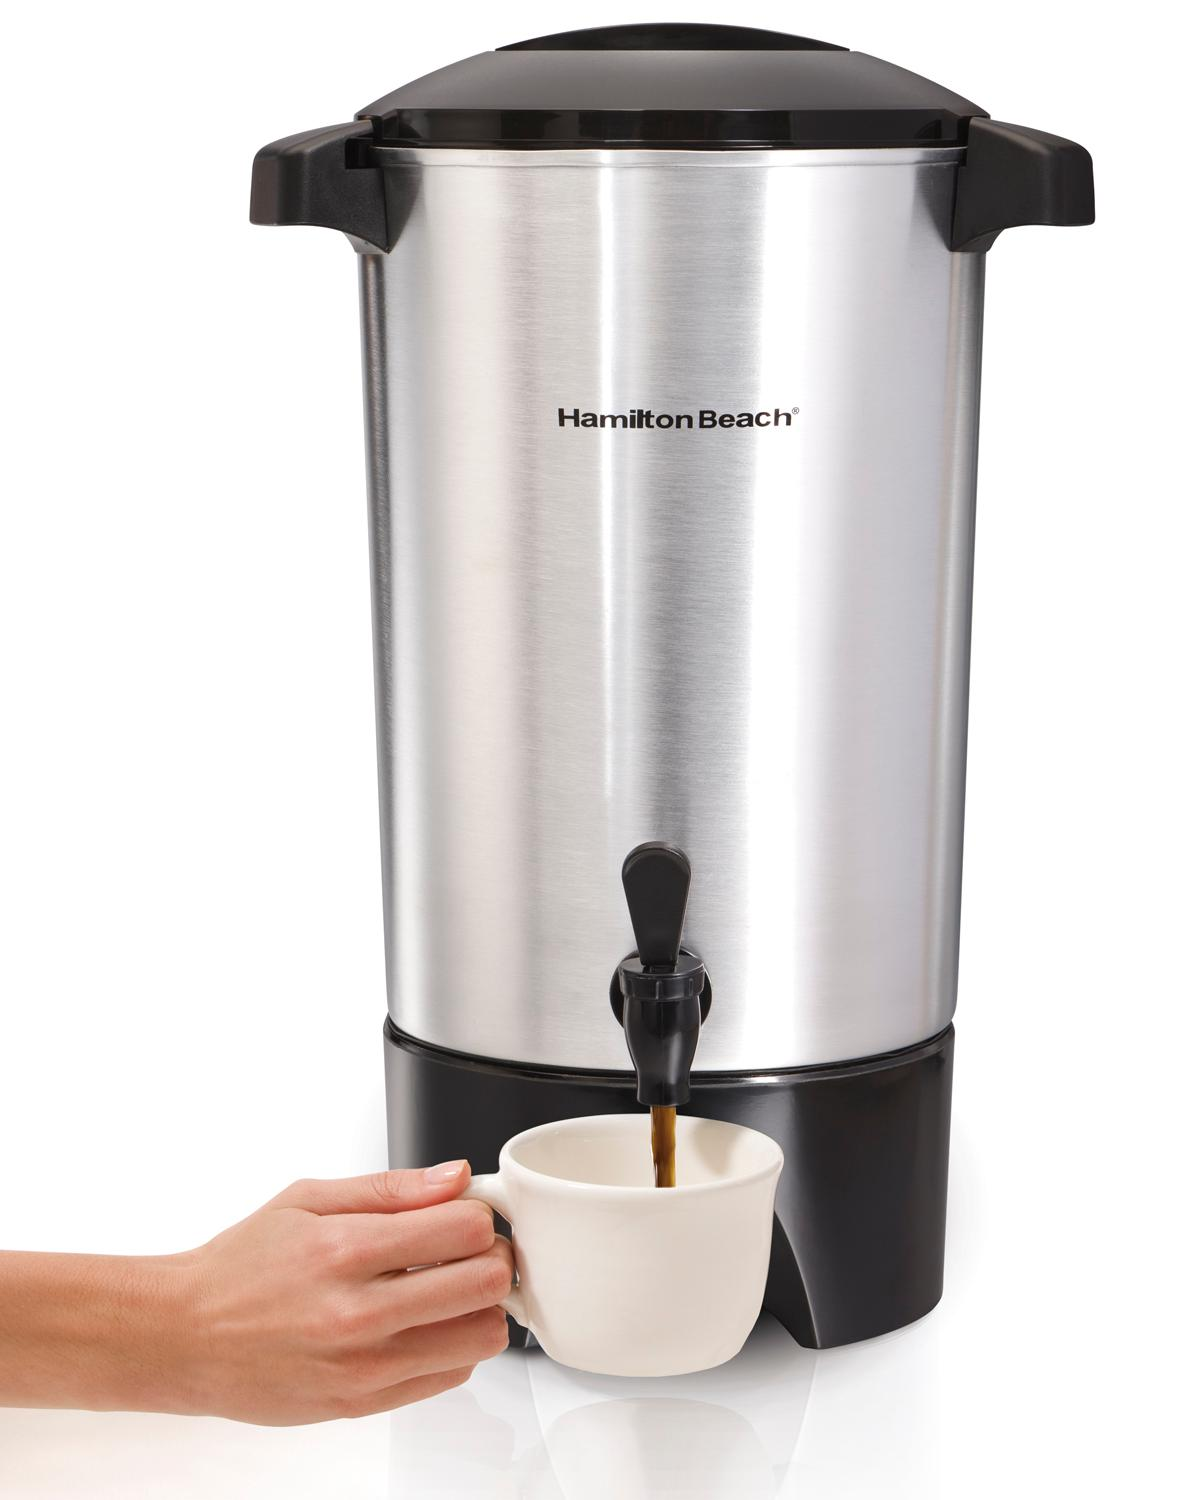 Amazoncom Hamilton Beach Cup Coffee Urn Silver - 5 most unique coffee shops in hamilton on